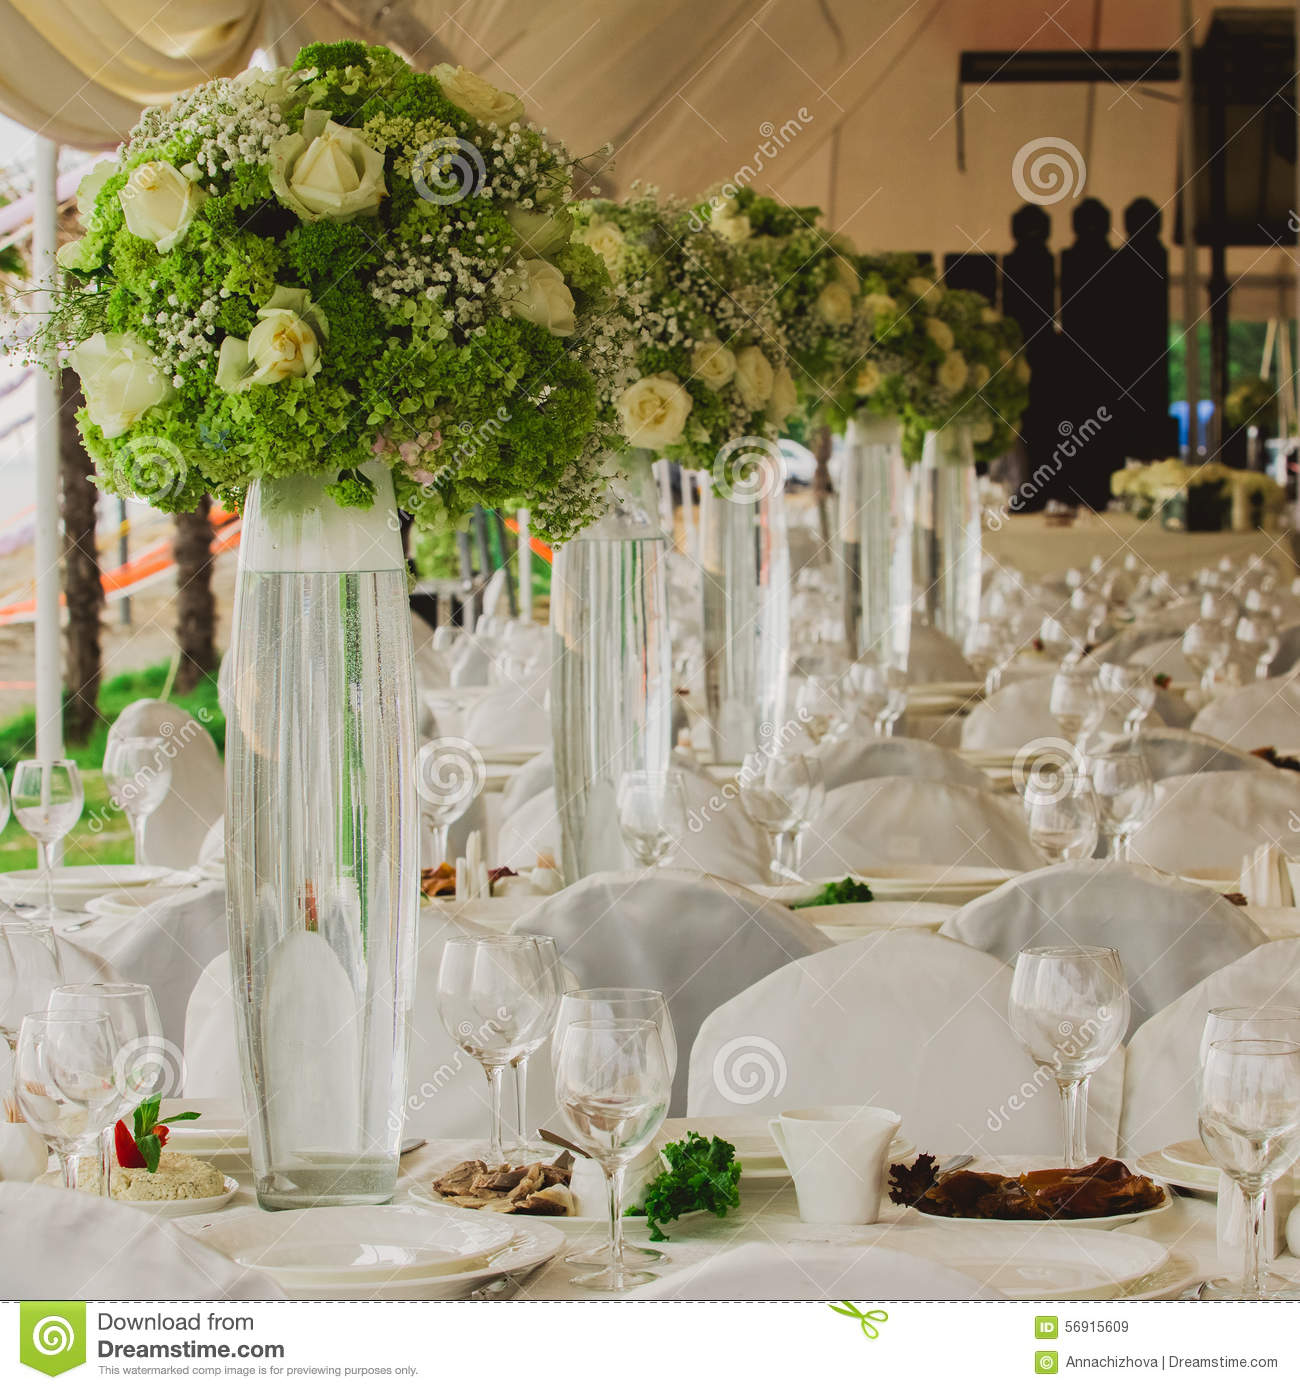 Download Wedding Set Up In Garden Inside Beach Stock Image   Image Of  Celebration, Decor